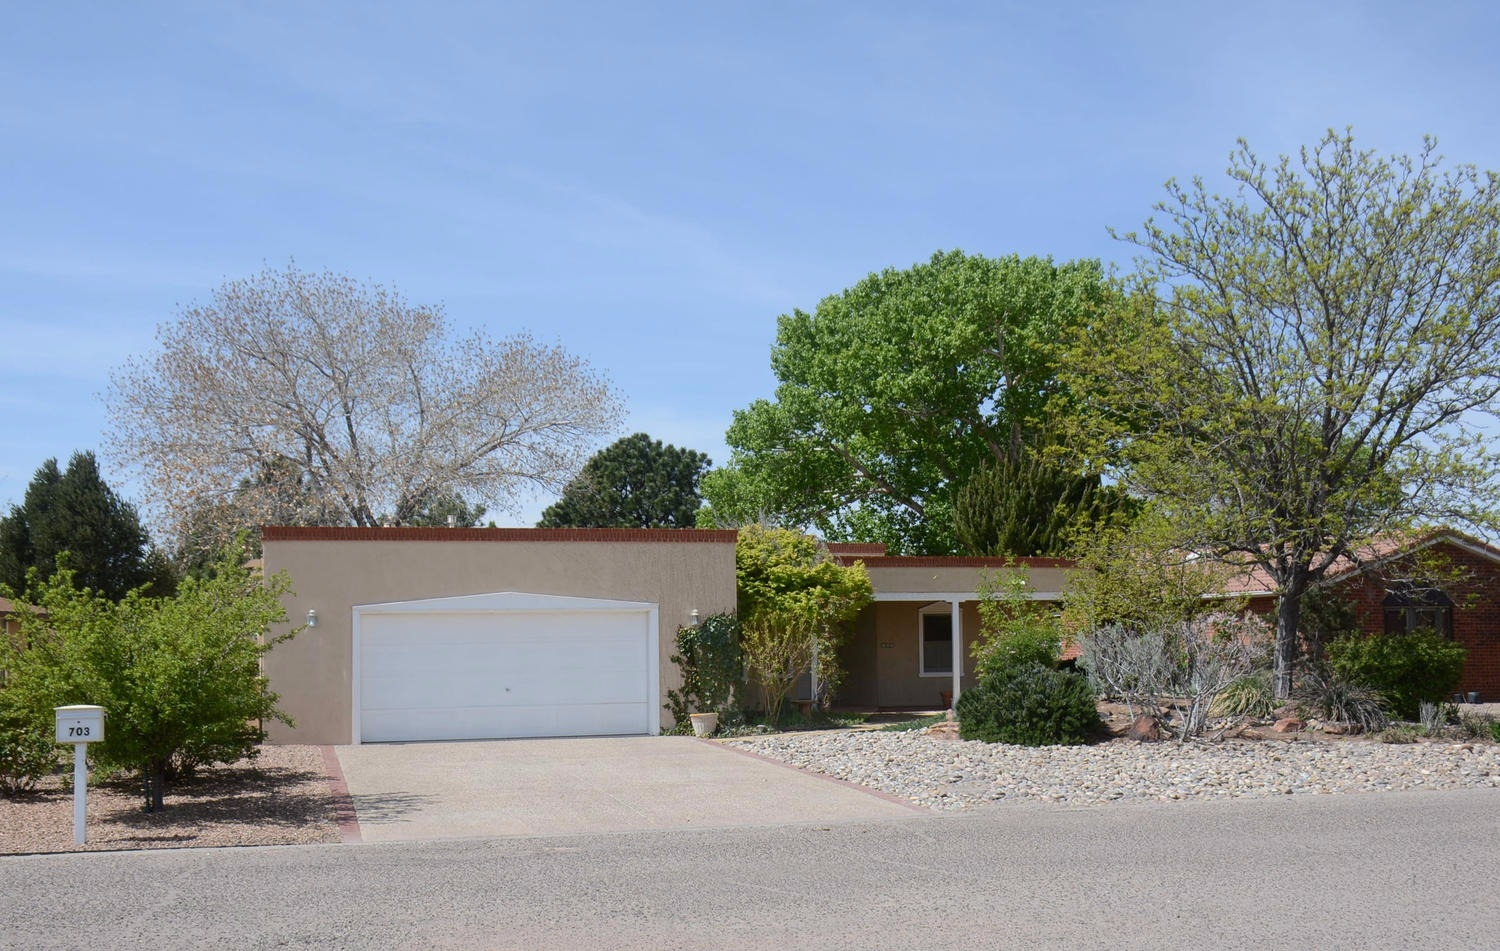 Golf course home for sale tierra del sol 703 carmel drive rio communities new mexico 87002 dailygadgetfo Gallery